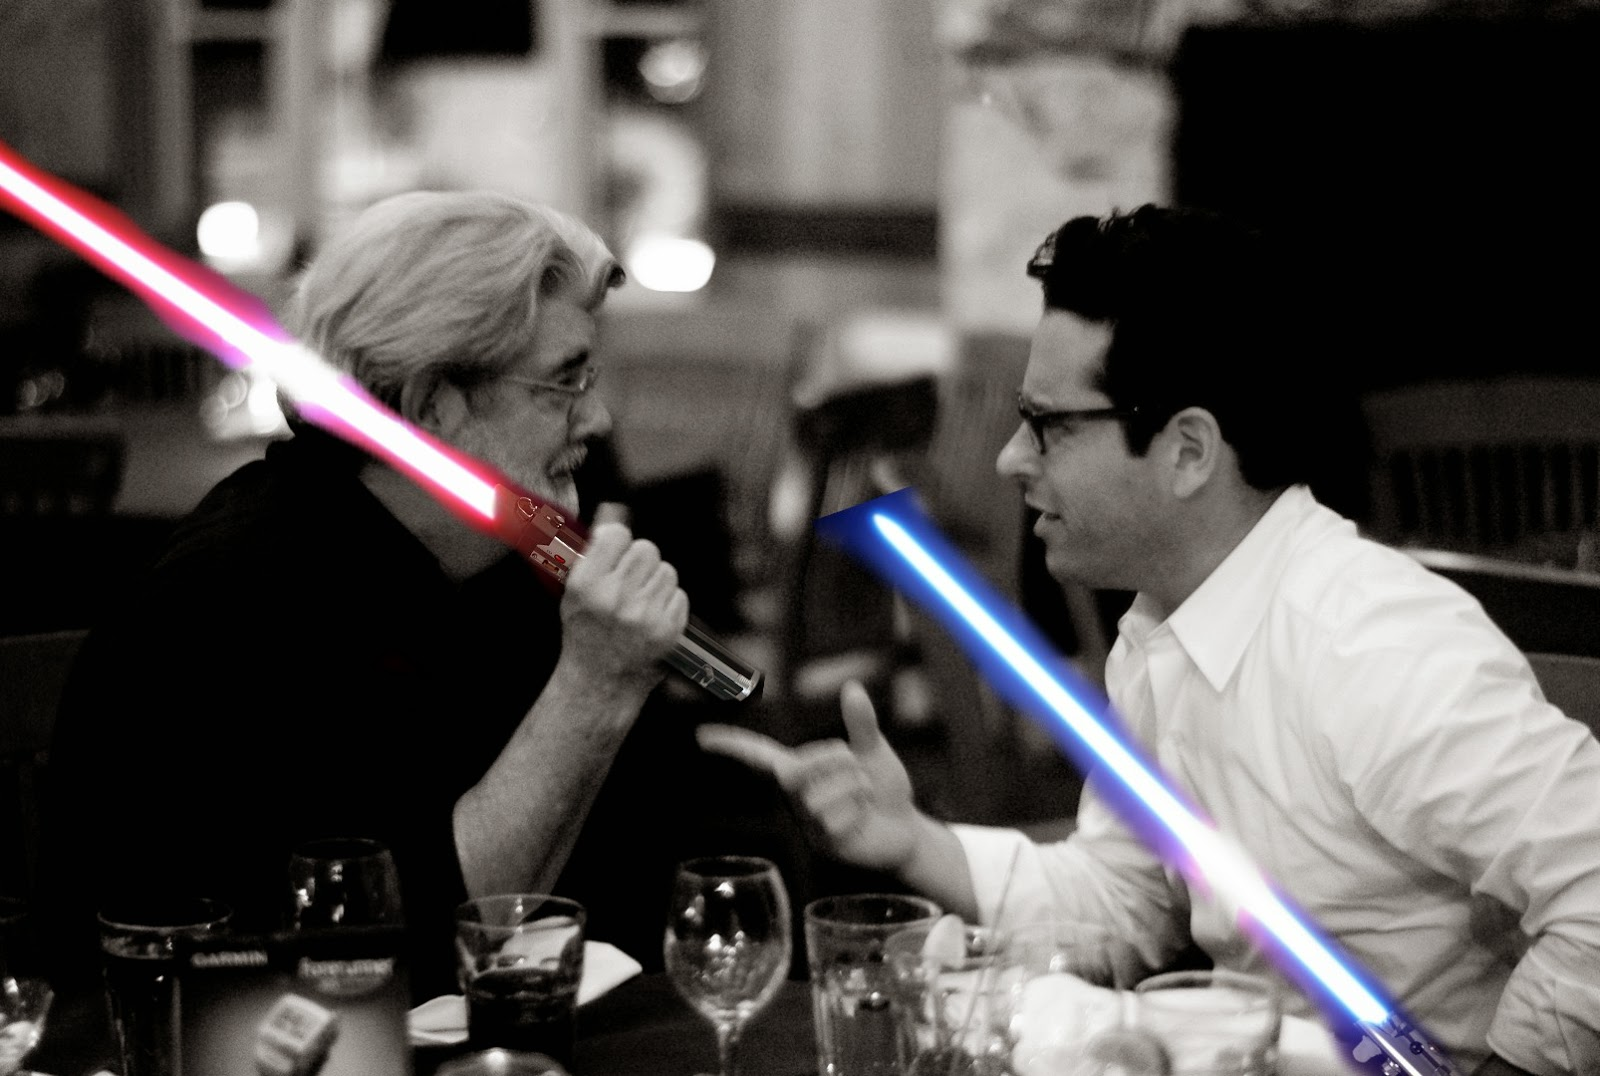 Star Wars george lucas jj abrams lightsabers